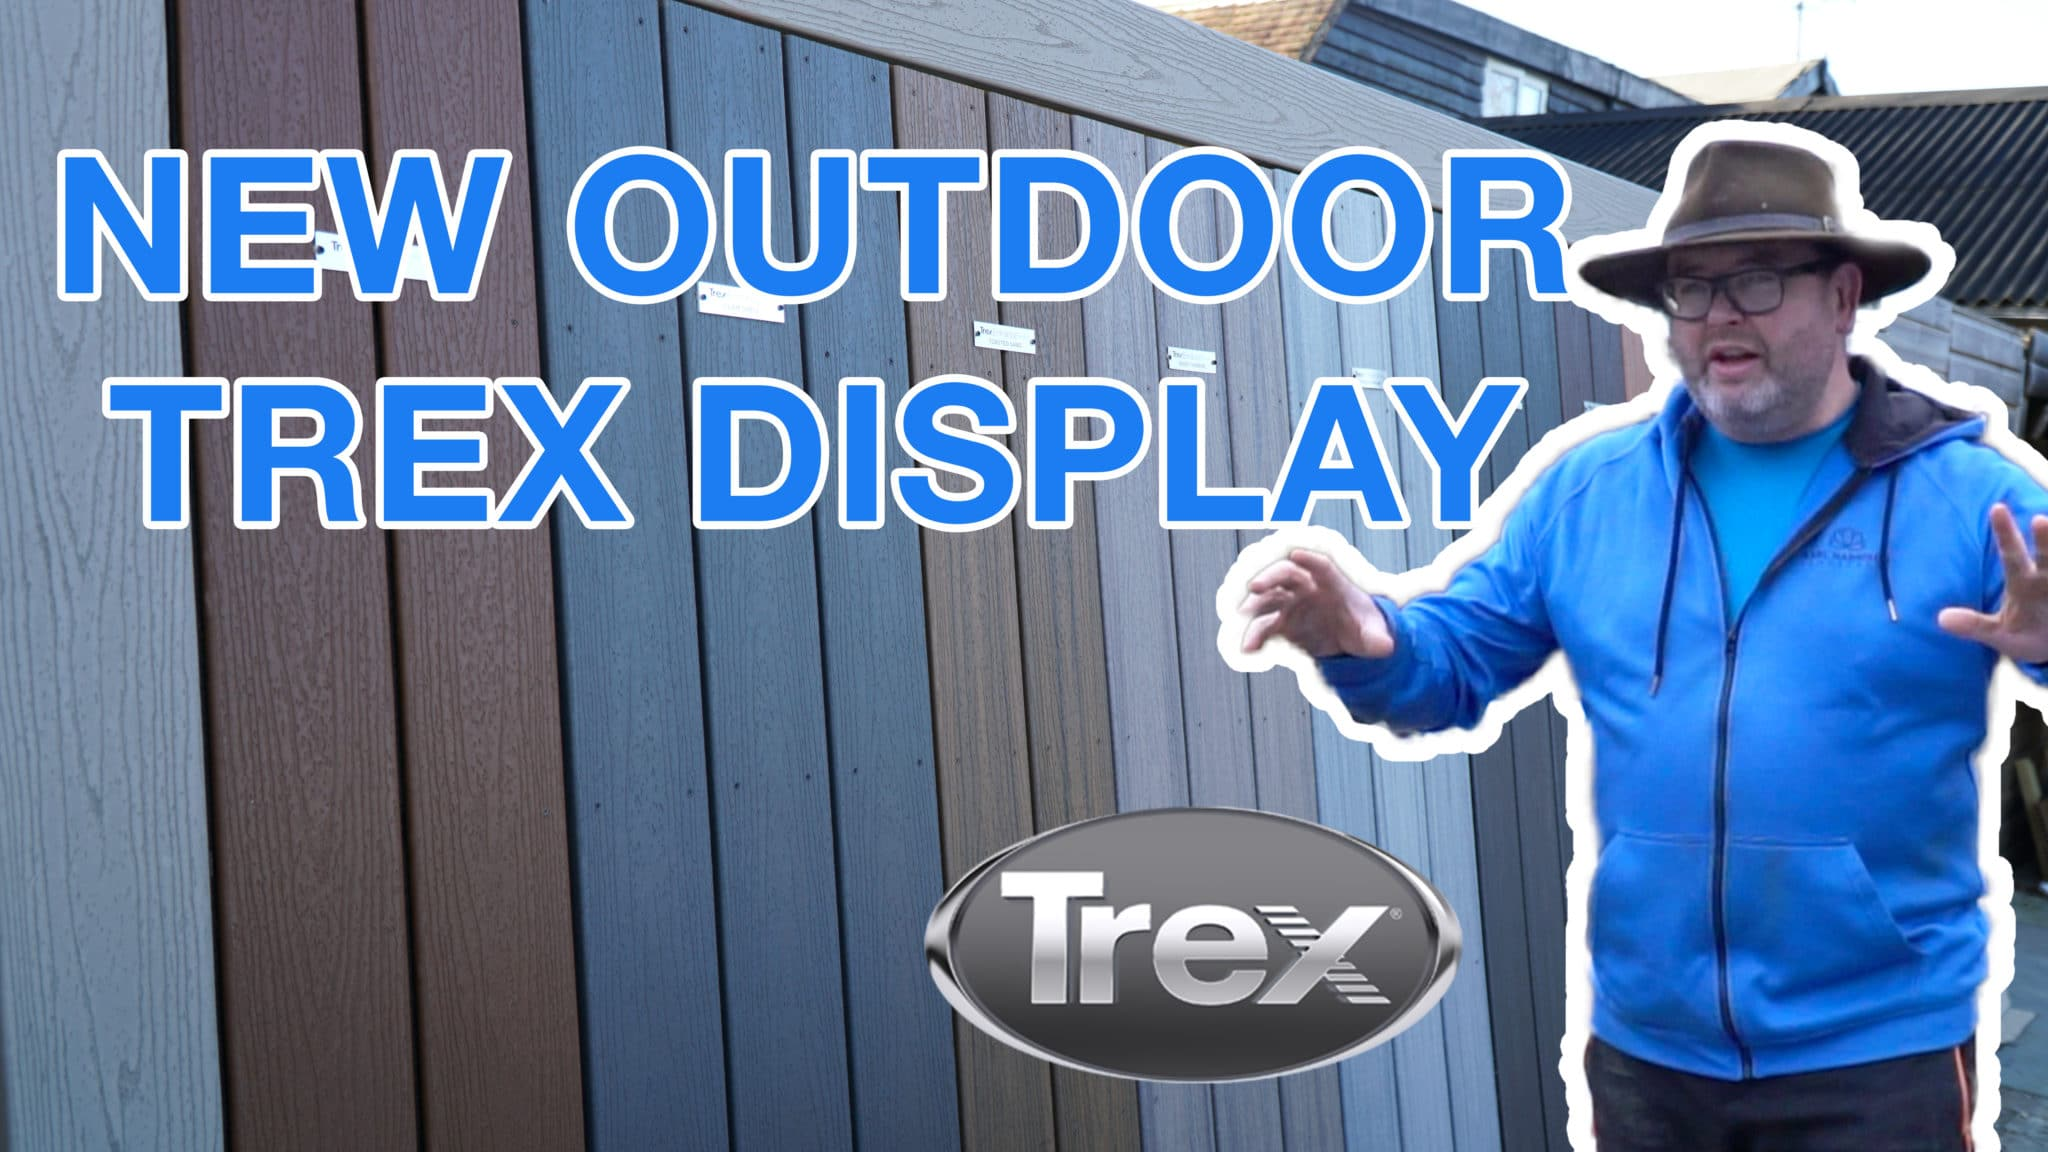 New outdoor Trex display at Country Supplies